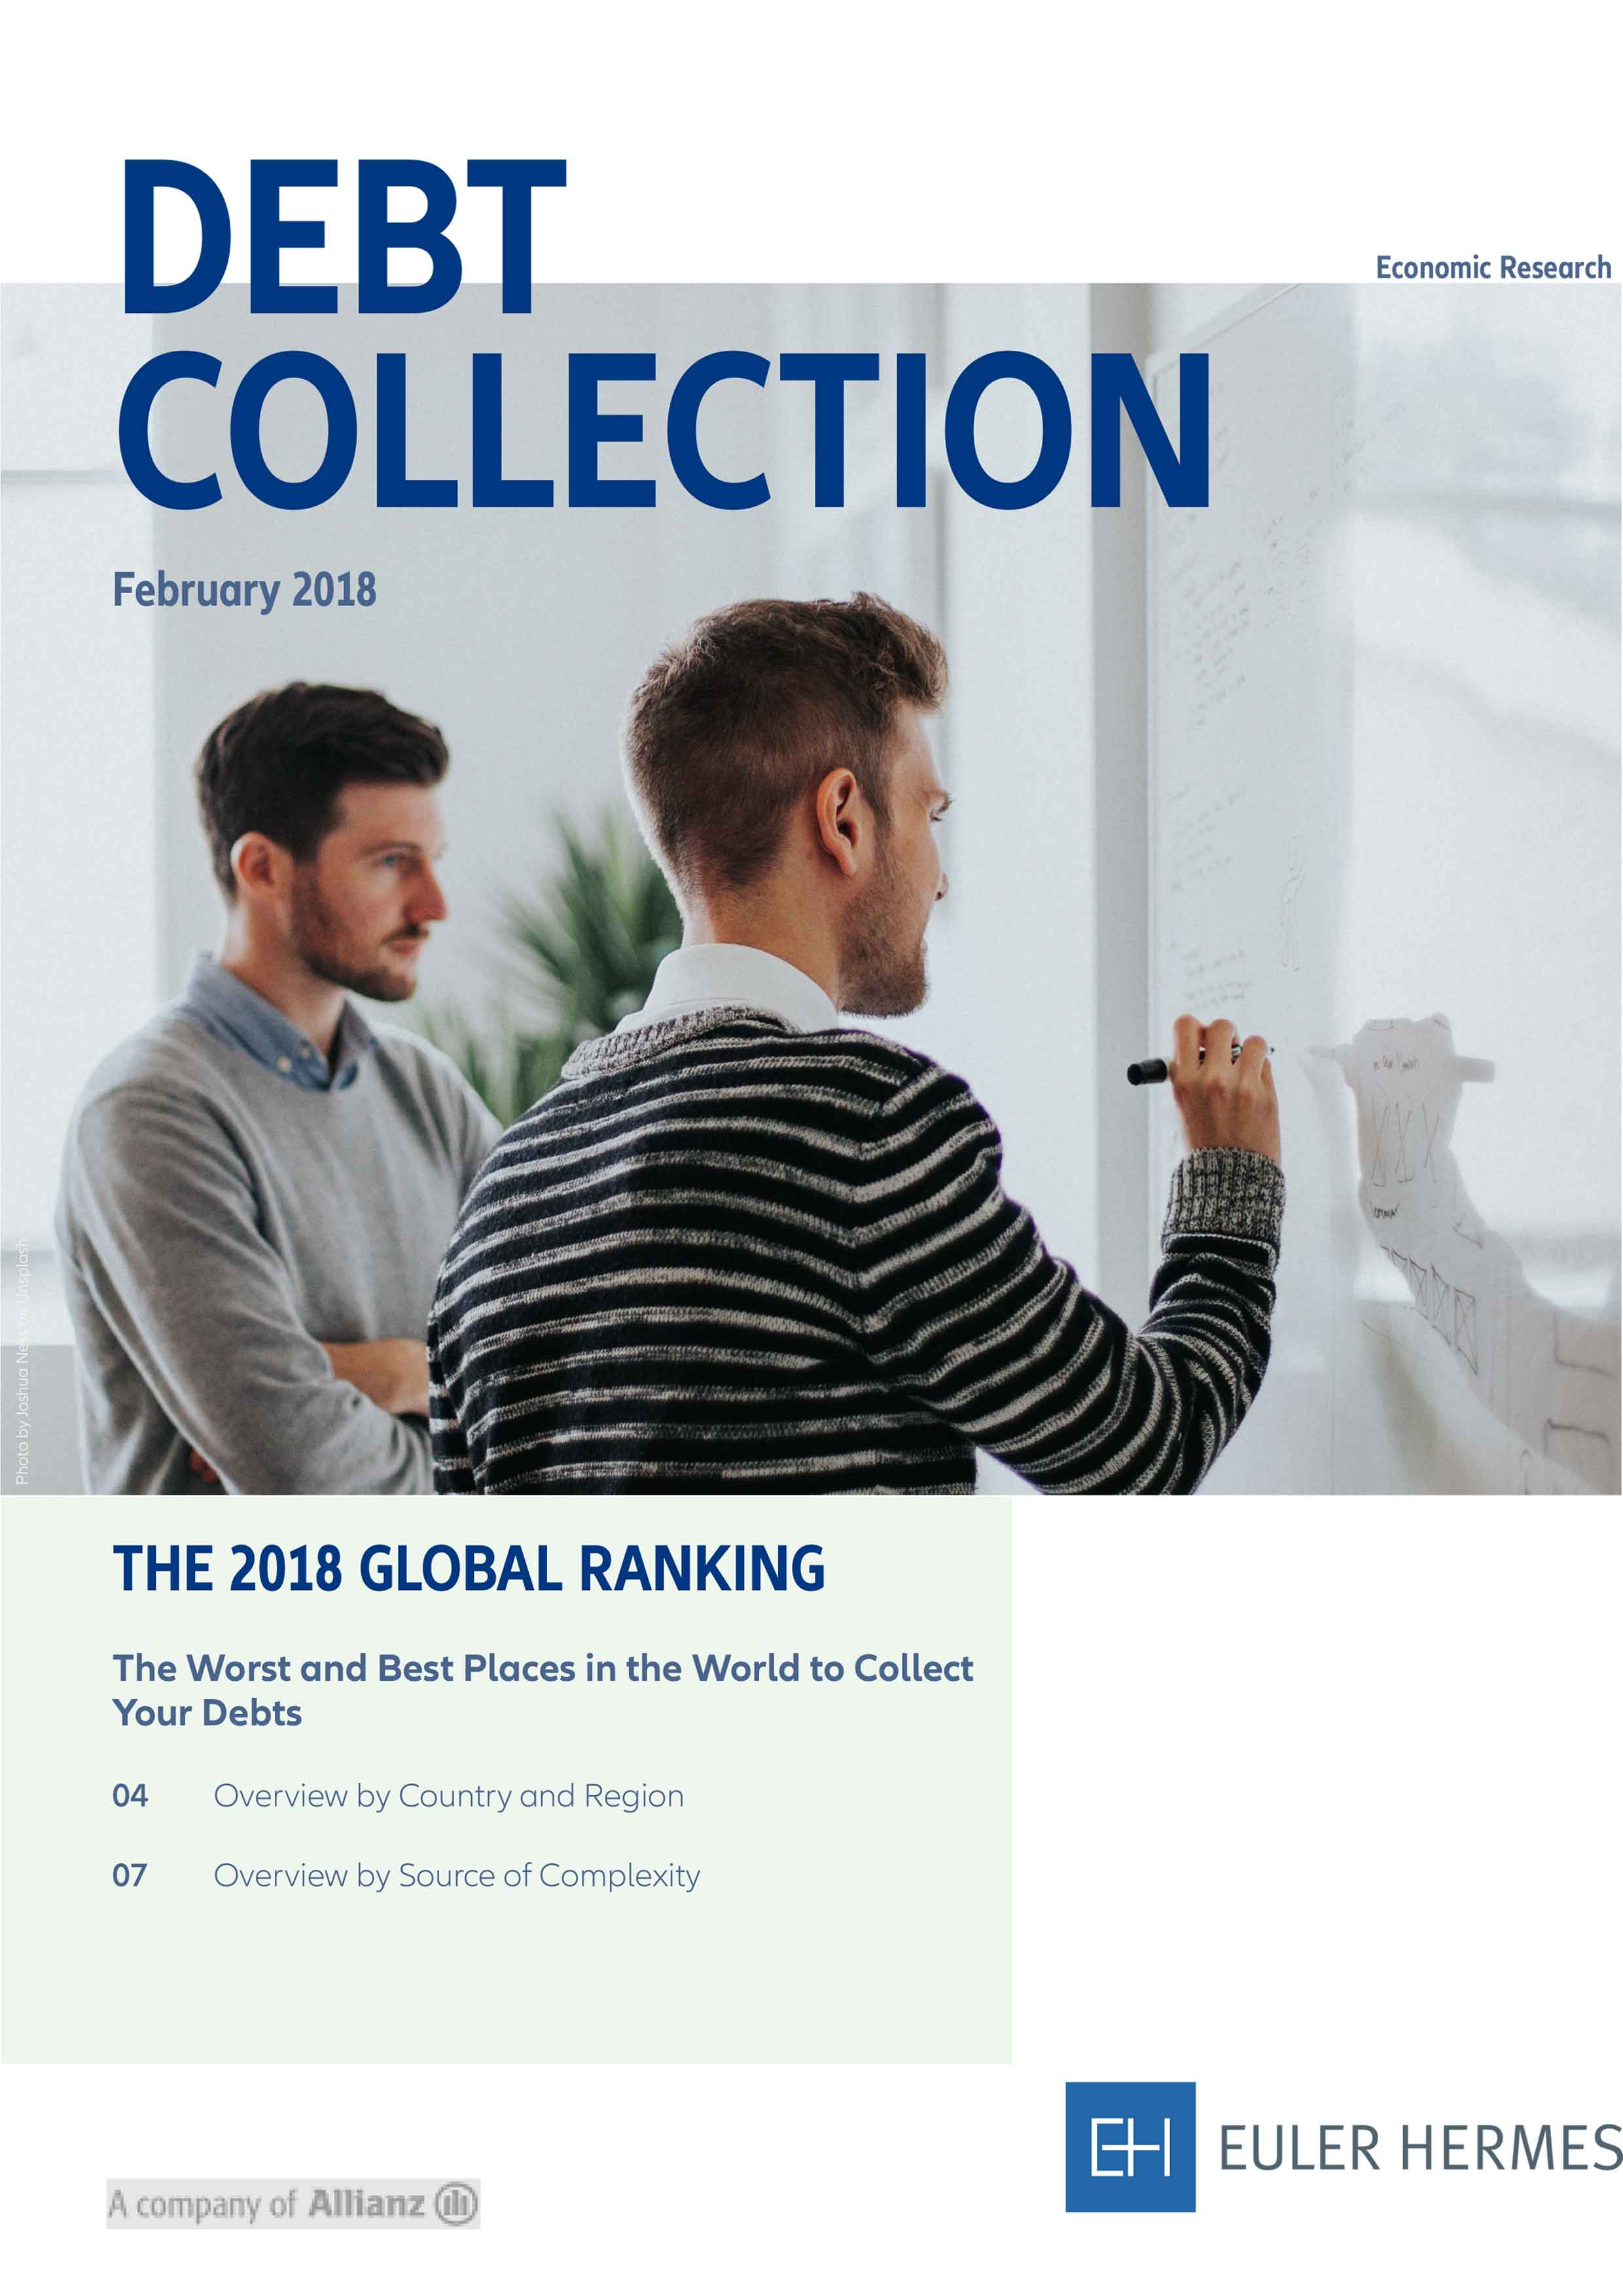 Debt Collection - The 2018 Global Ranking